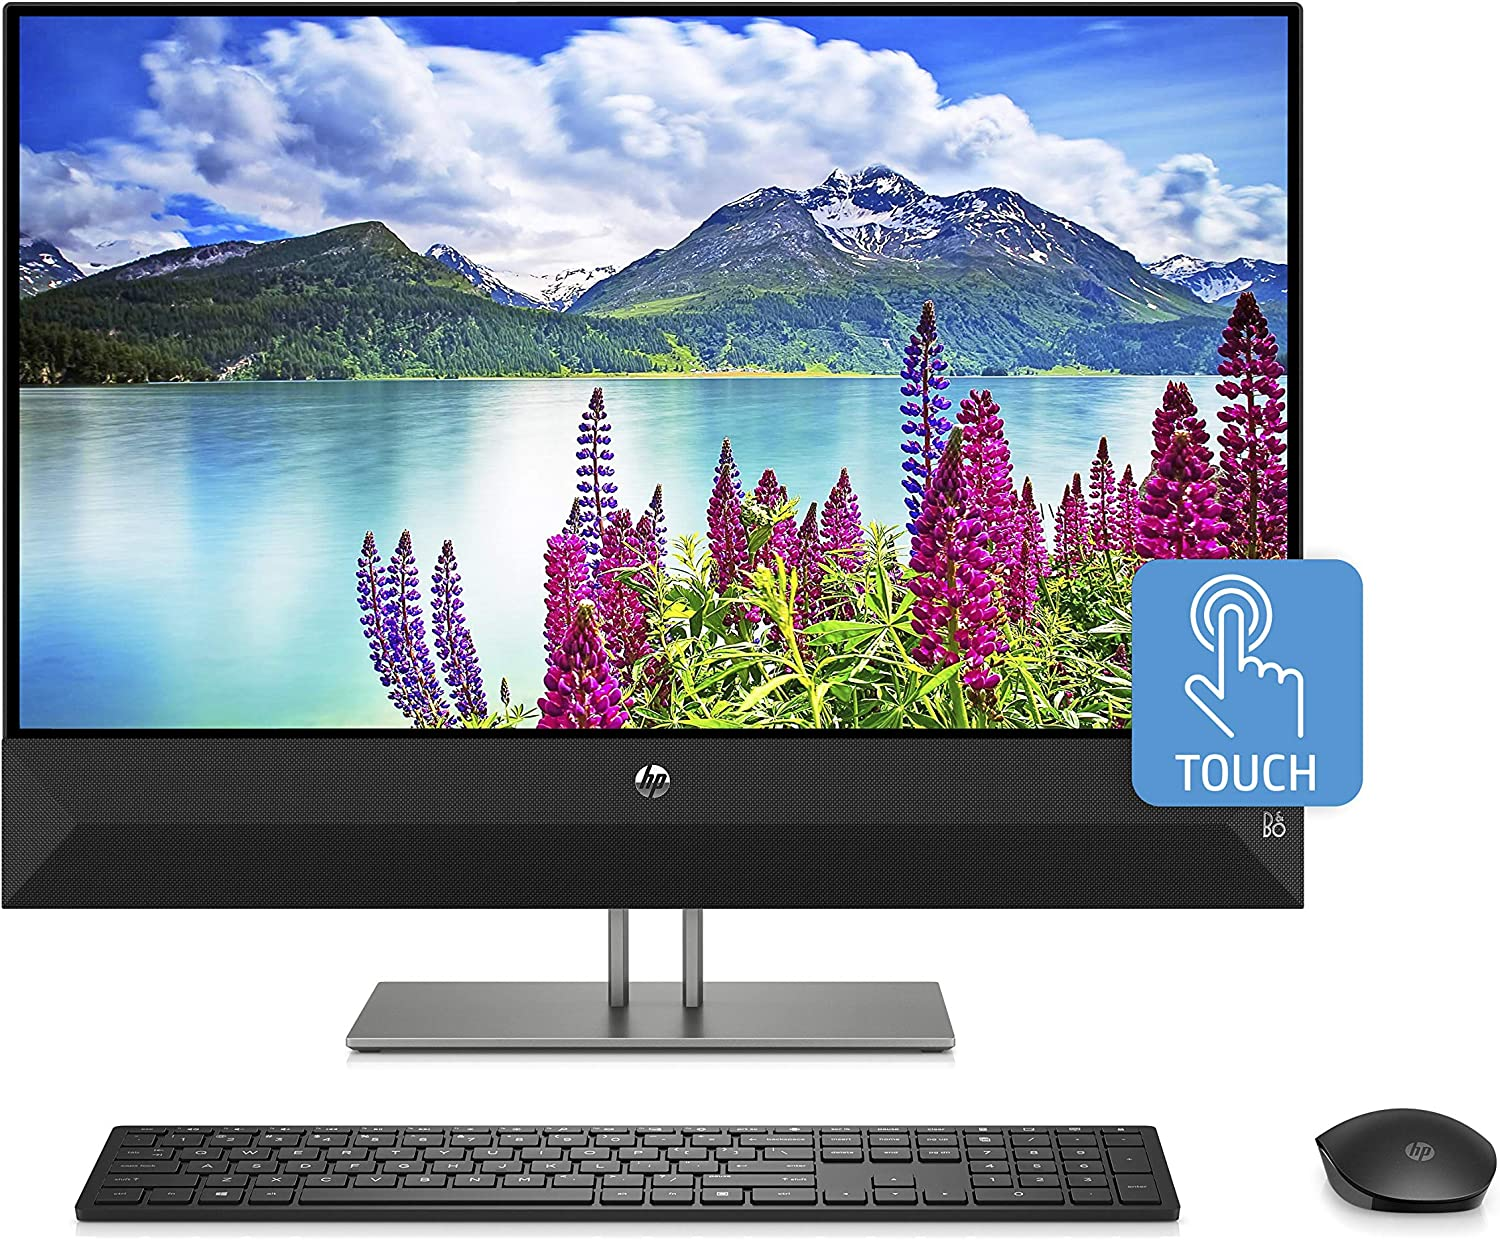 "HP 24-xa0053w 23.8"" FHD i5-8400T 1.70GHz 4GB RAM 1TB HDD Win 10 Home Black"